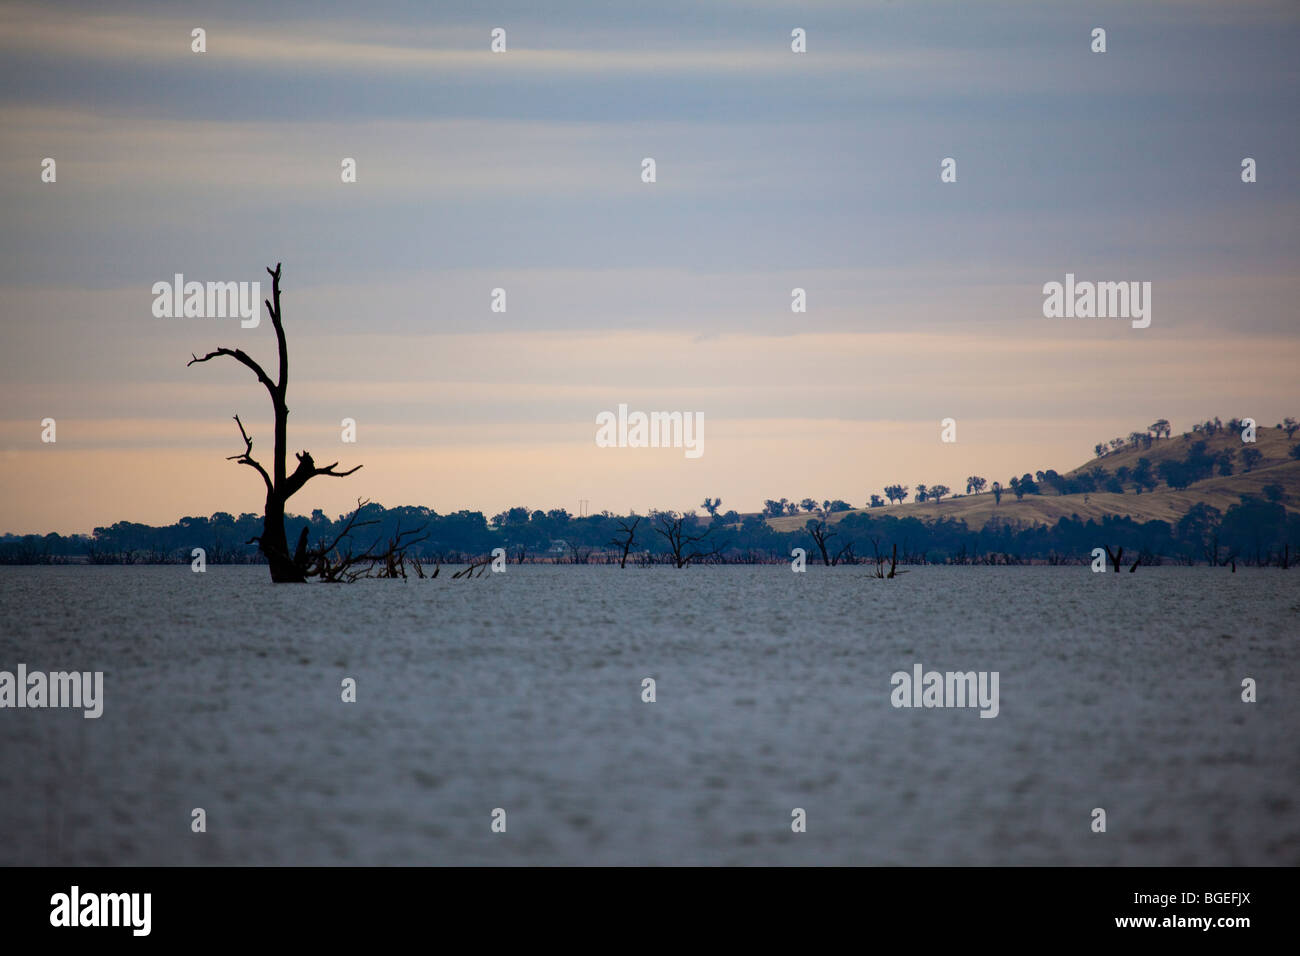 Dead trees in Lake Hume, on the Murray River, Victoria, Australia - Stock Image